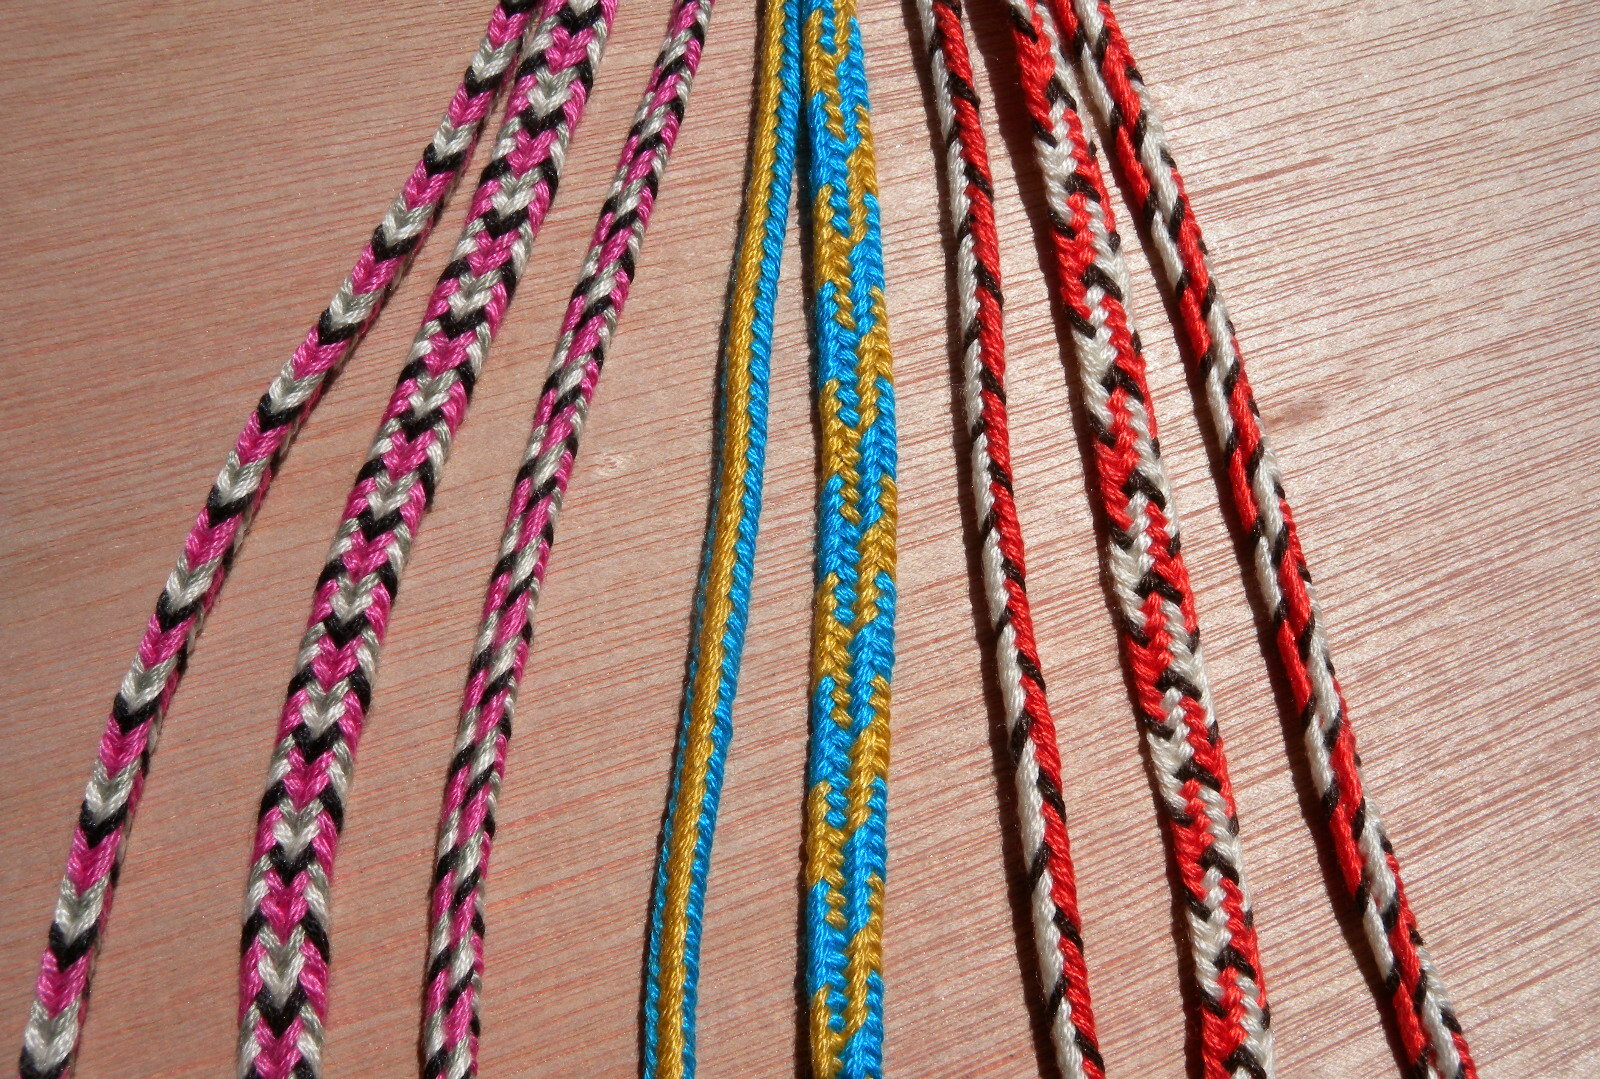 eco in multicolor macrame friendship tribal beautiful handknot her pattern embroidery from sustainable bracelet friendly bracelets wrap eclectic thread item